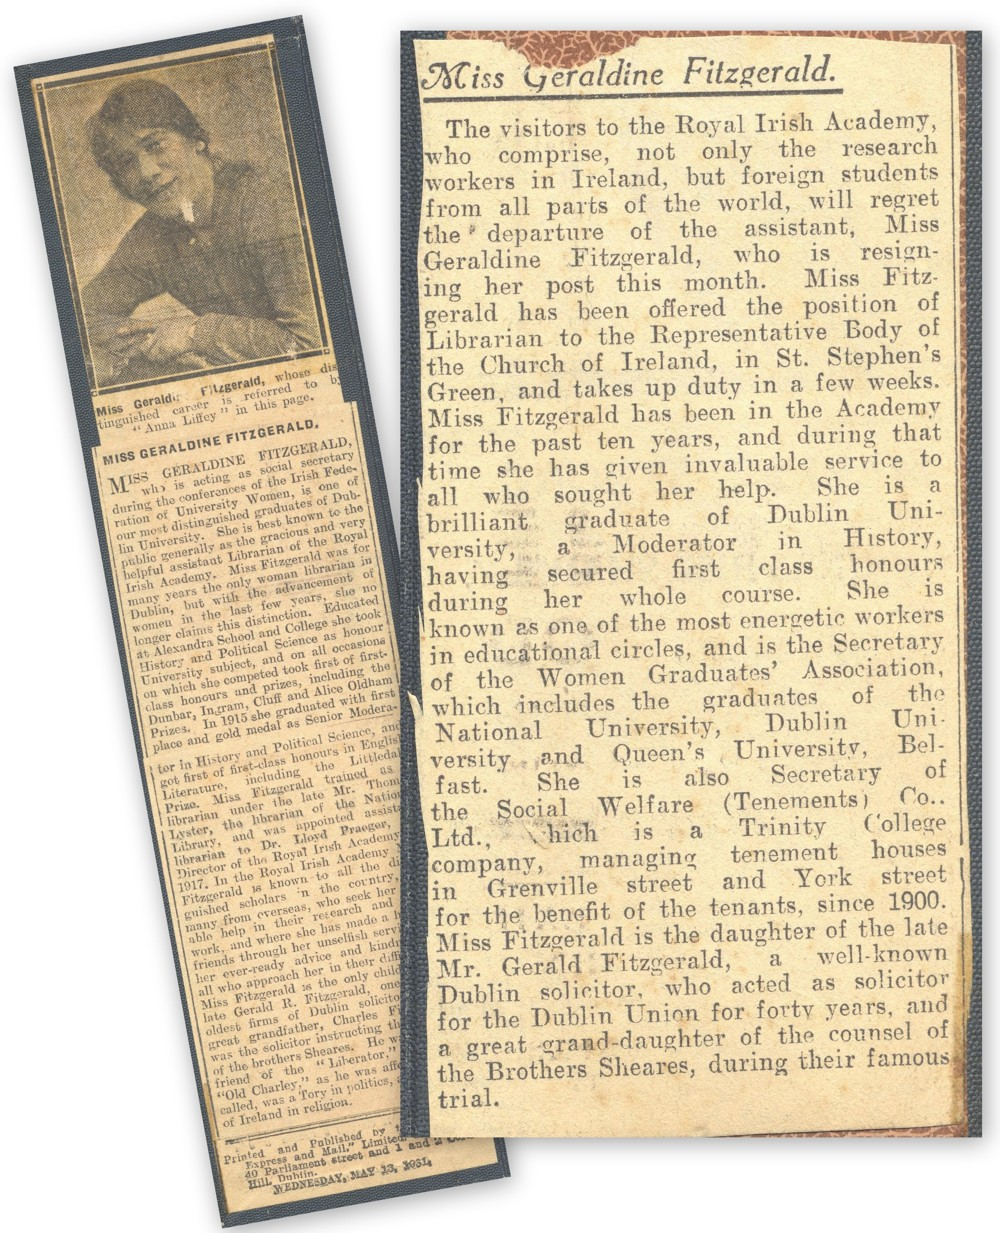 Press cuttings recounting the achievements of Miss Geraldine Fitzgerald, RCB Library Ms 1008/3